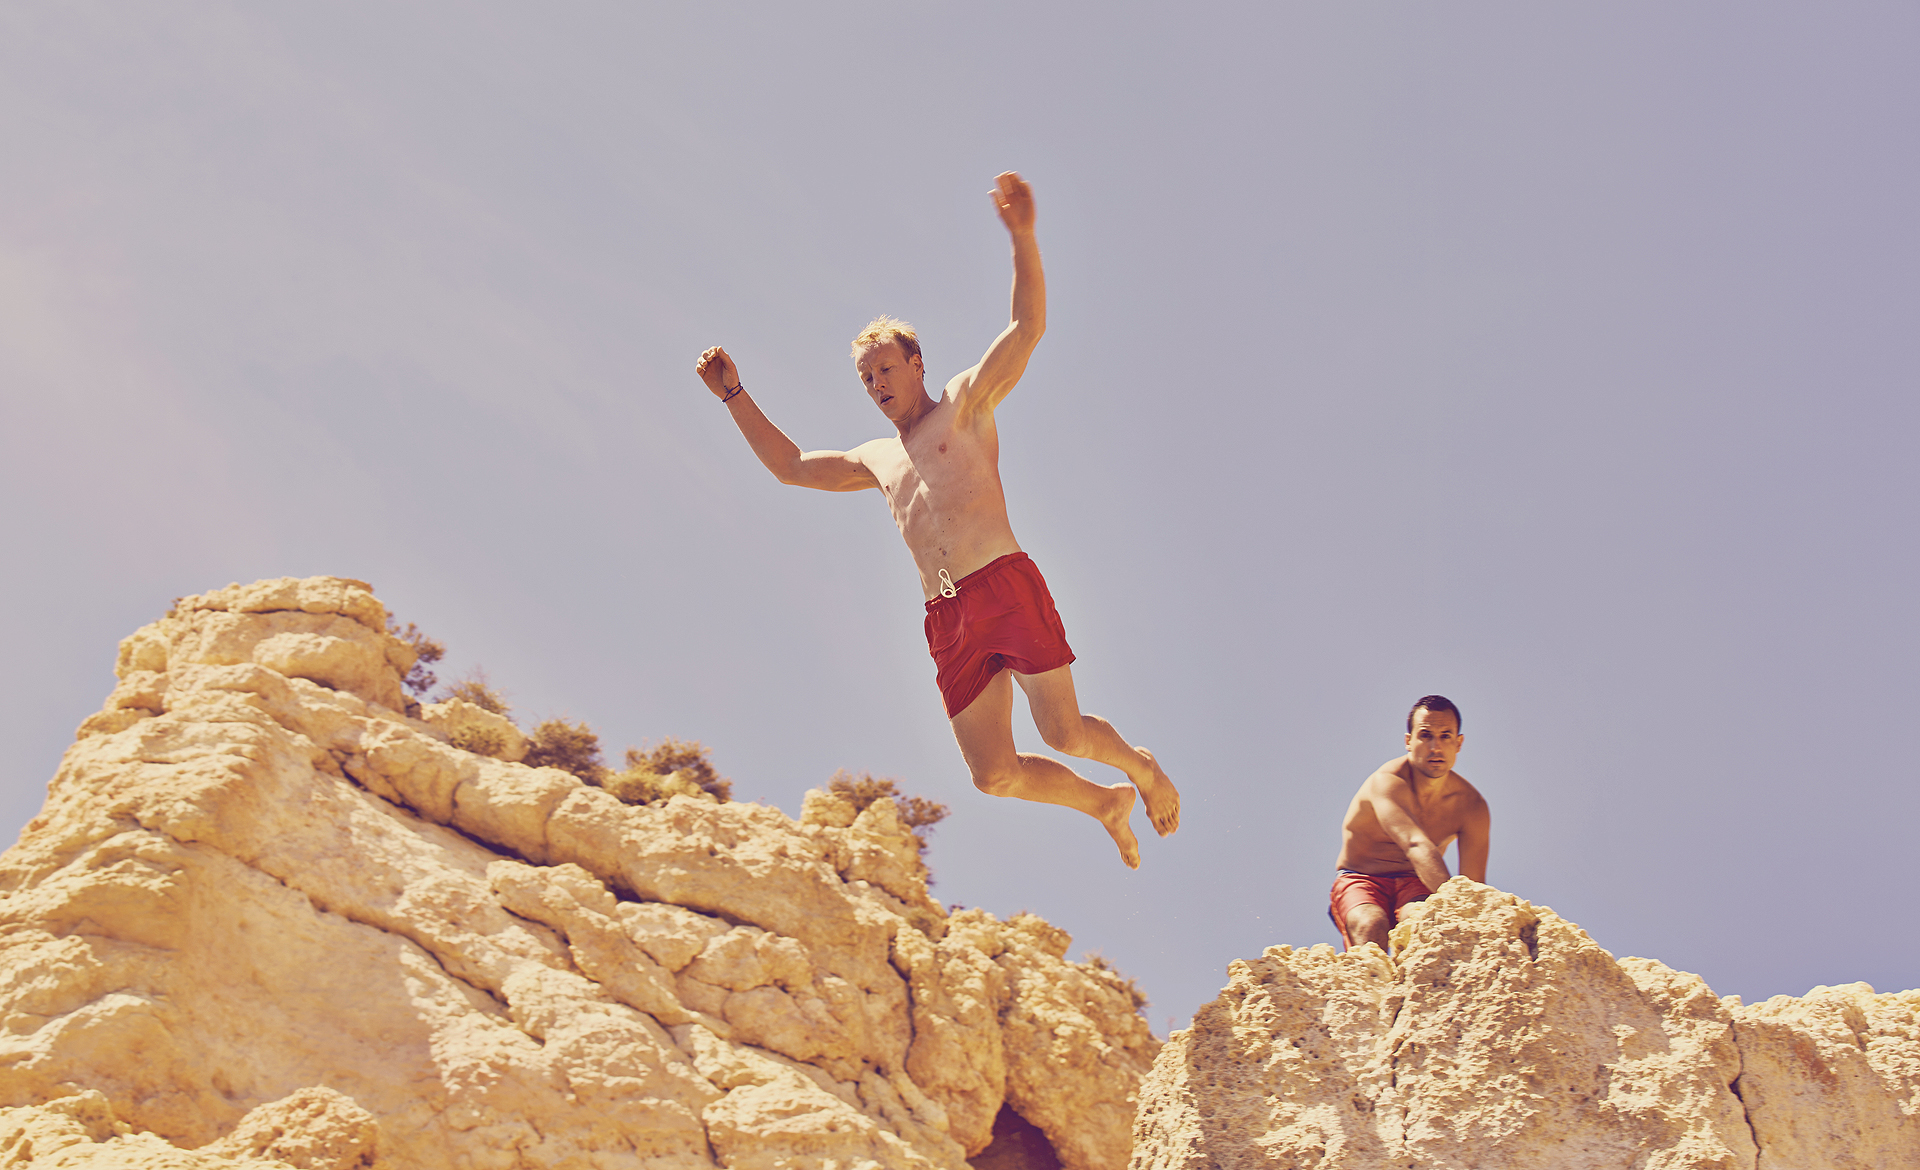 Cliff Jumping in Carvoeiro, Portugal